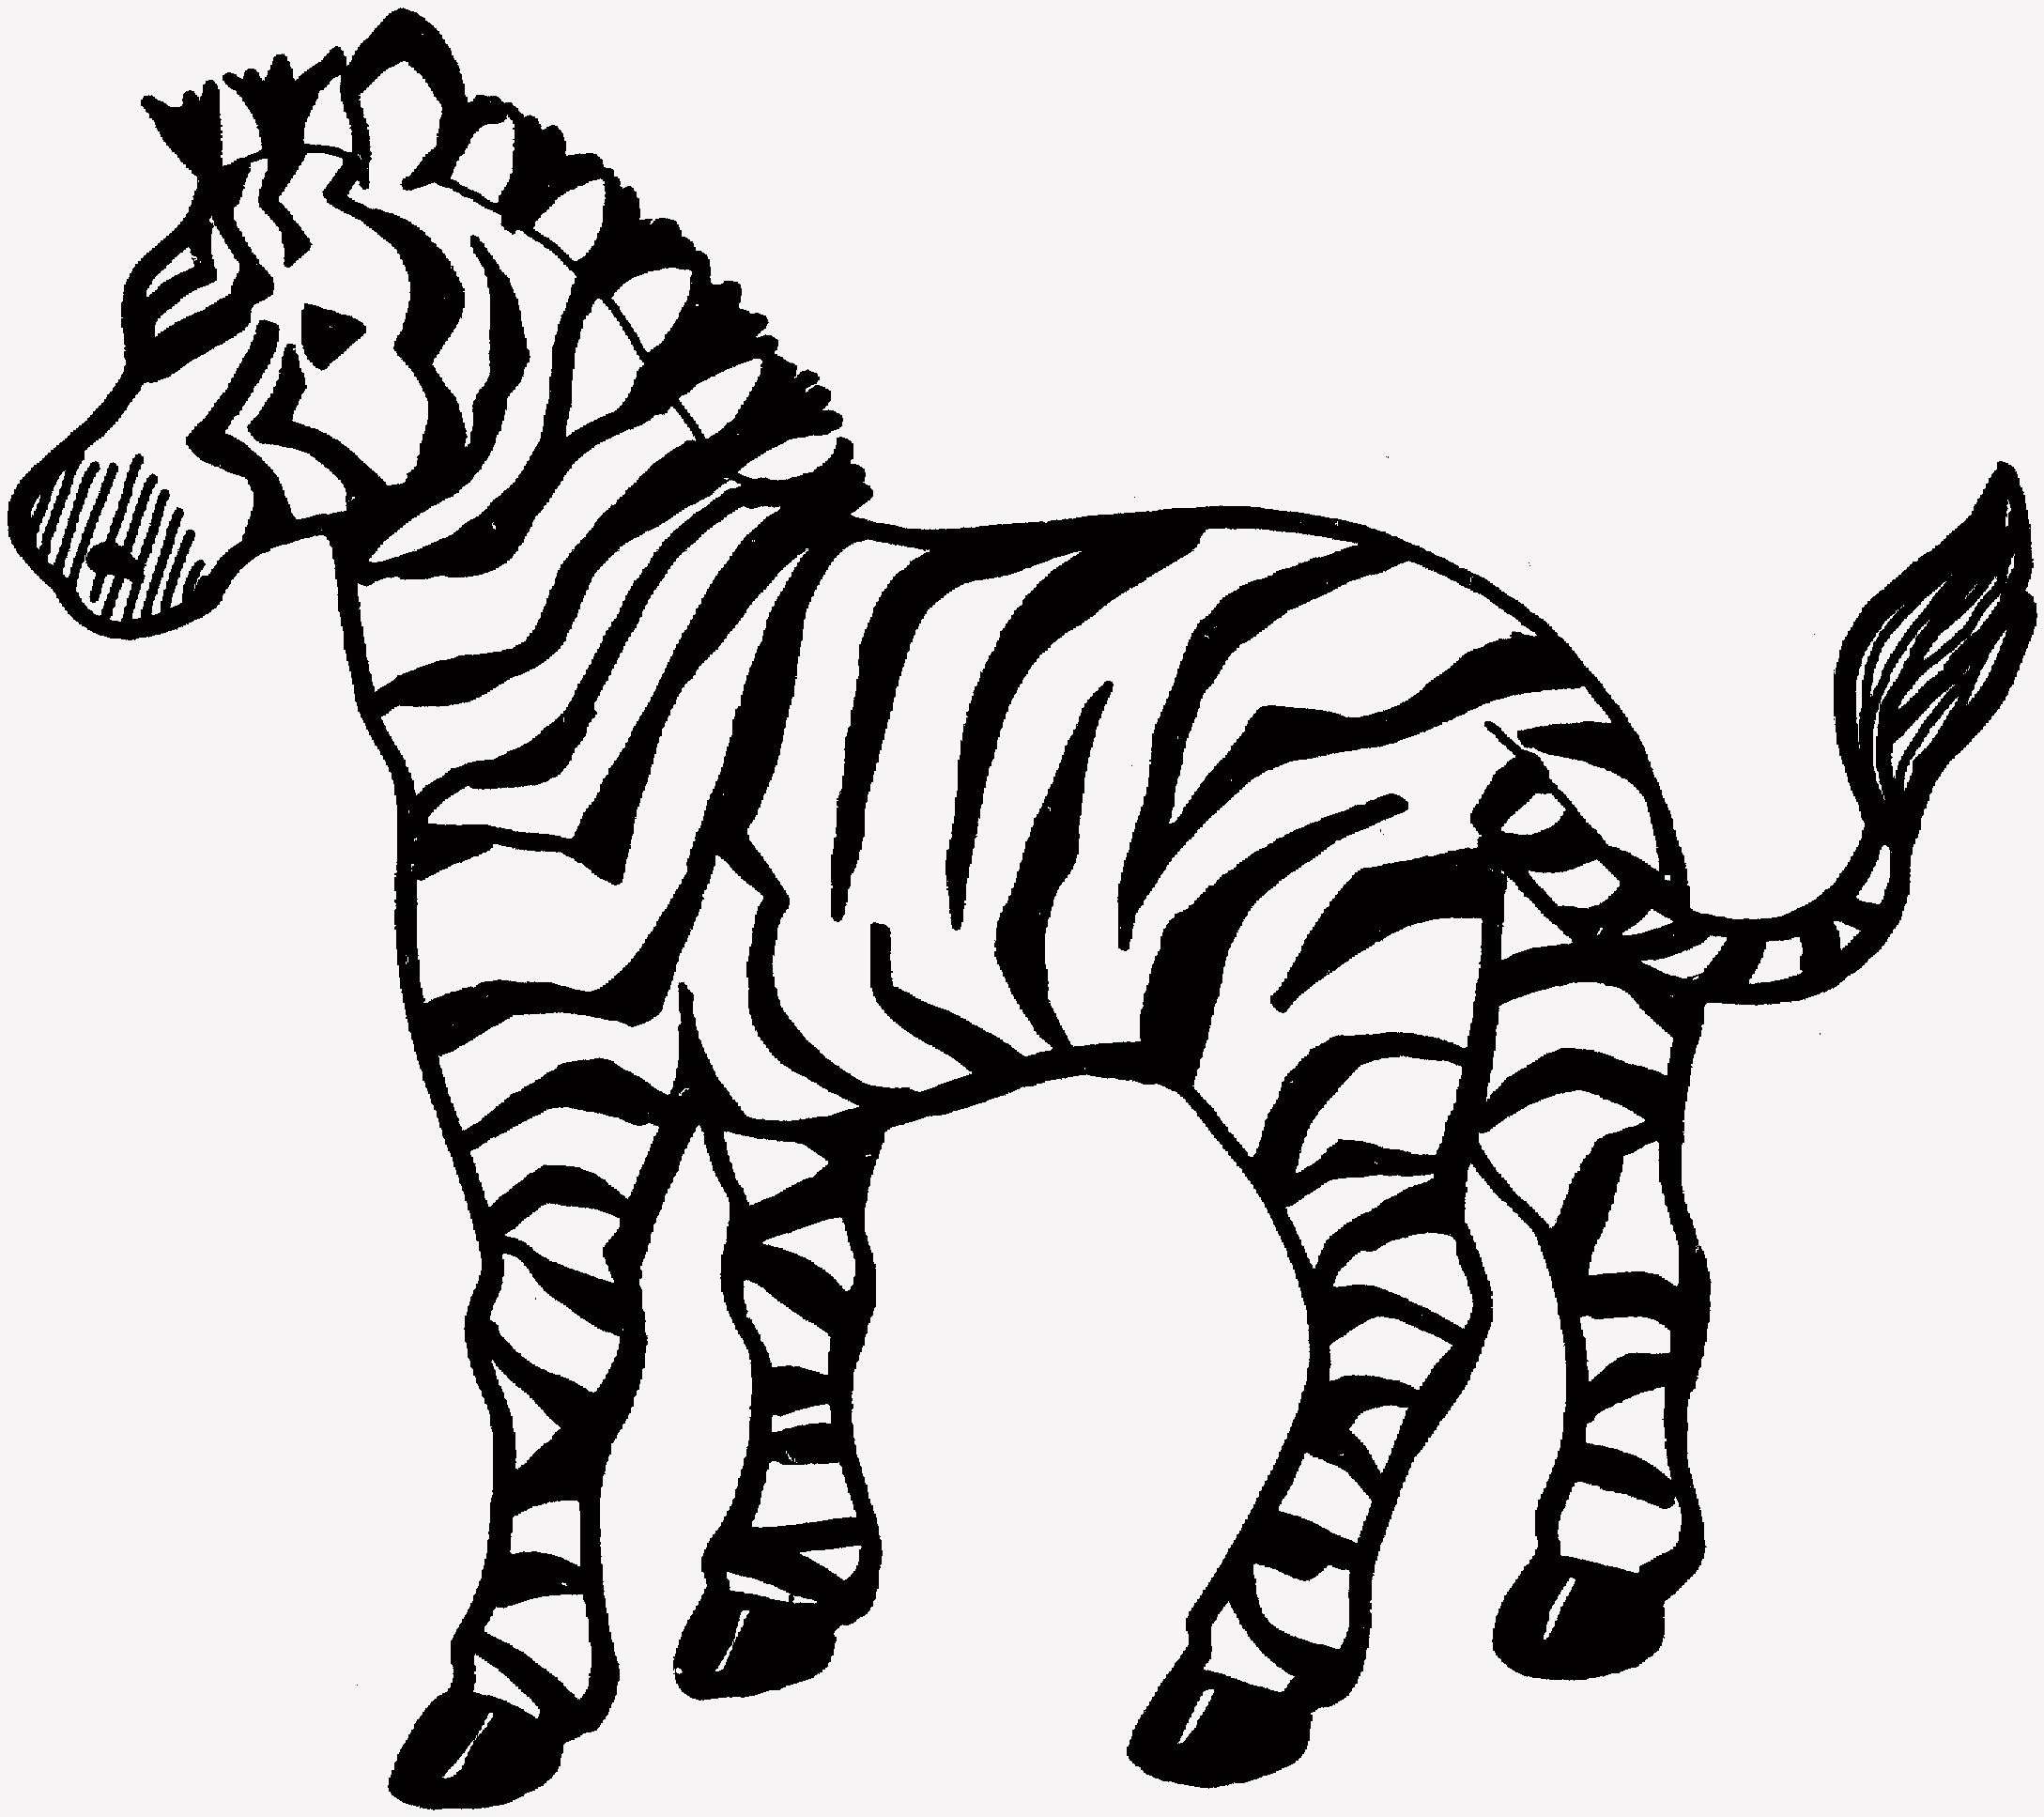 7 Zebra Coloring Sheet In 2020 Animal Coloring Pages Zebra Coloring Pages Cute Coloring Pages